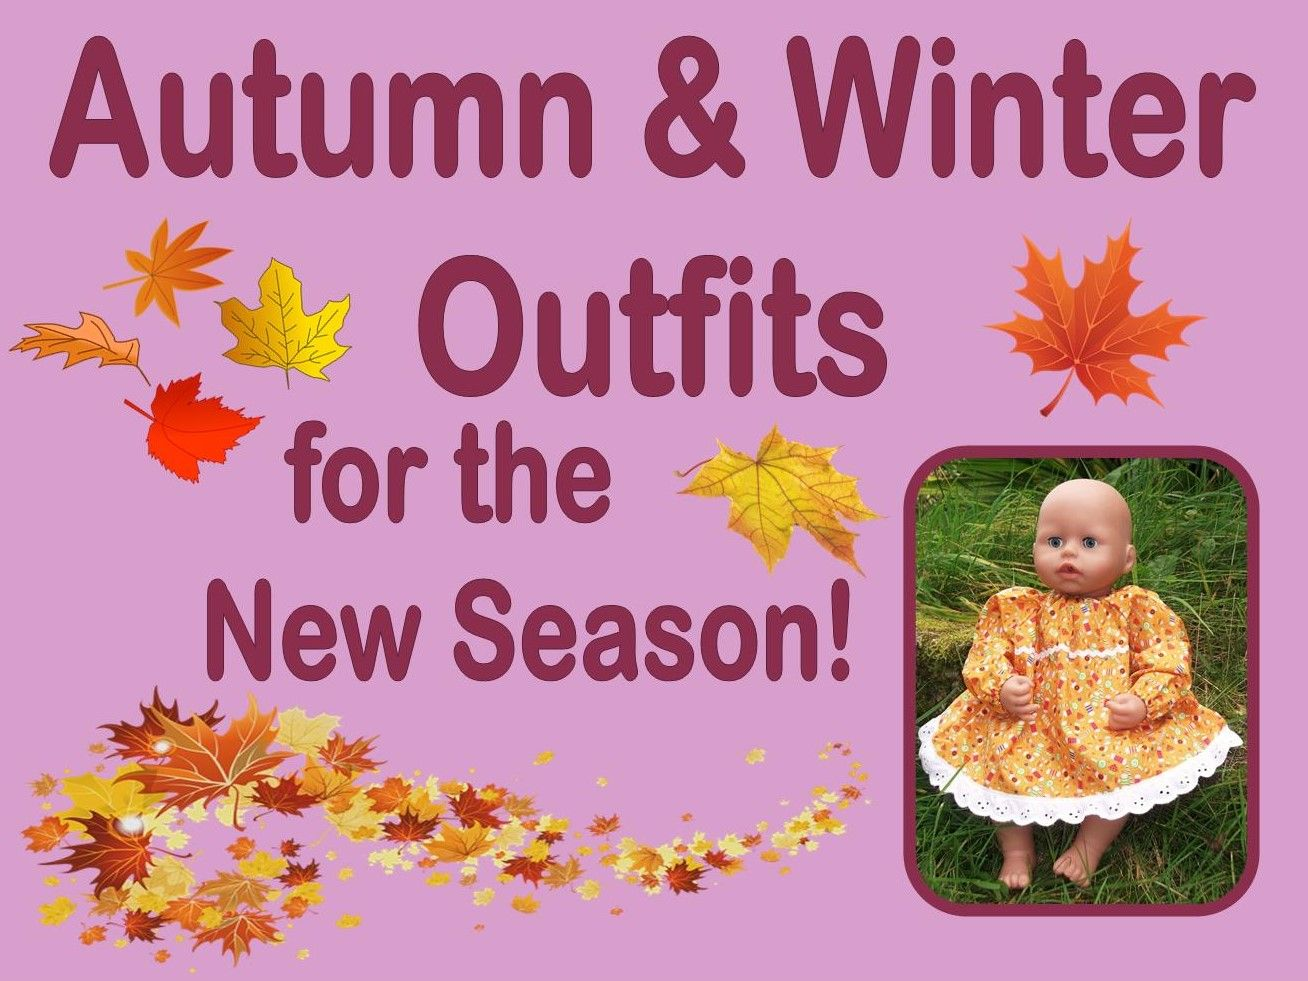 Photo of a doll wearing an orange dress, and cartoon autumn leaves with advertising text